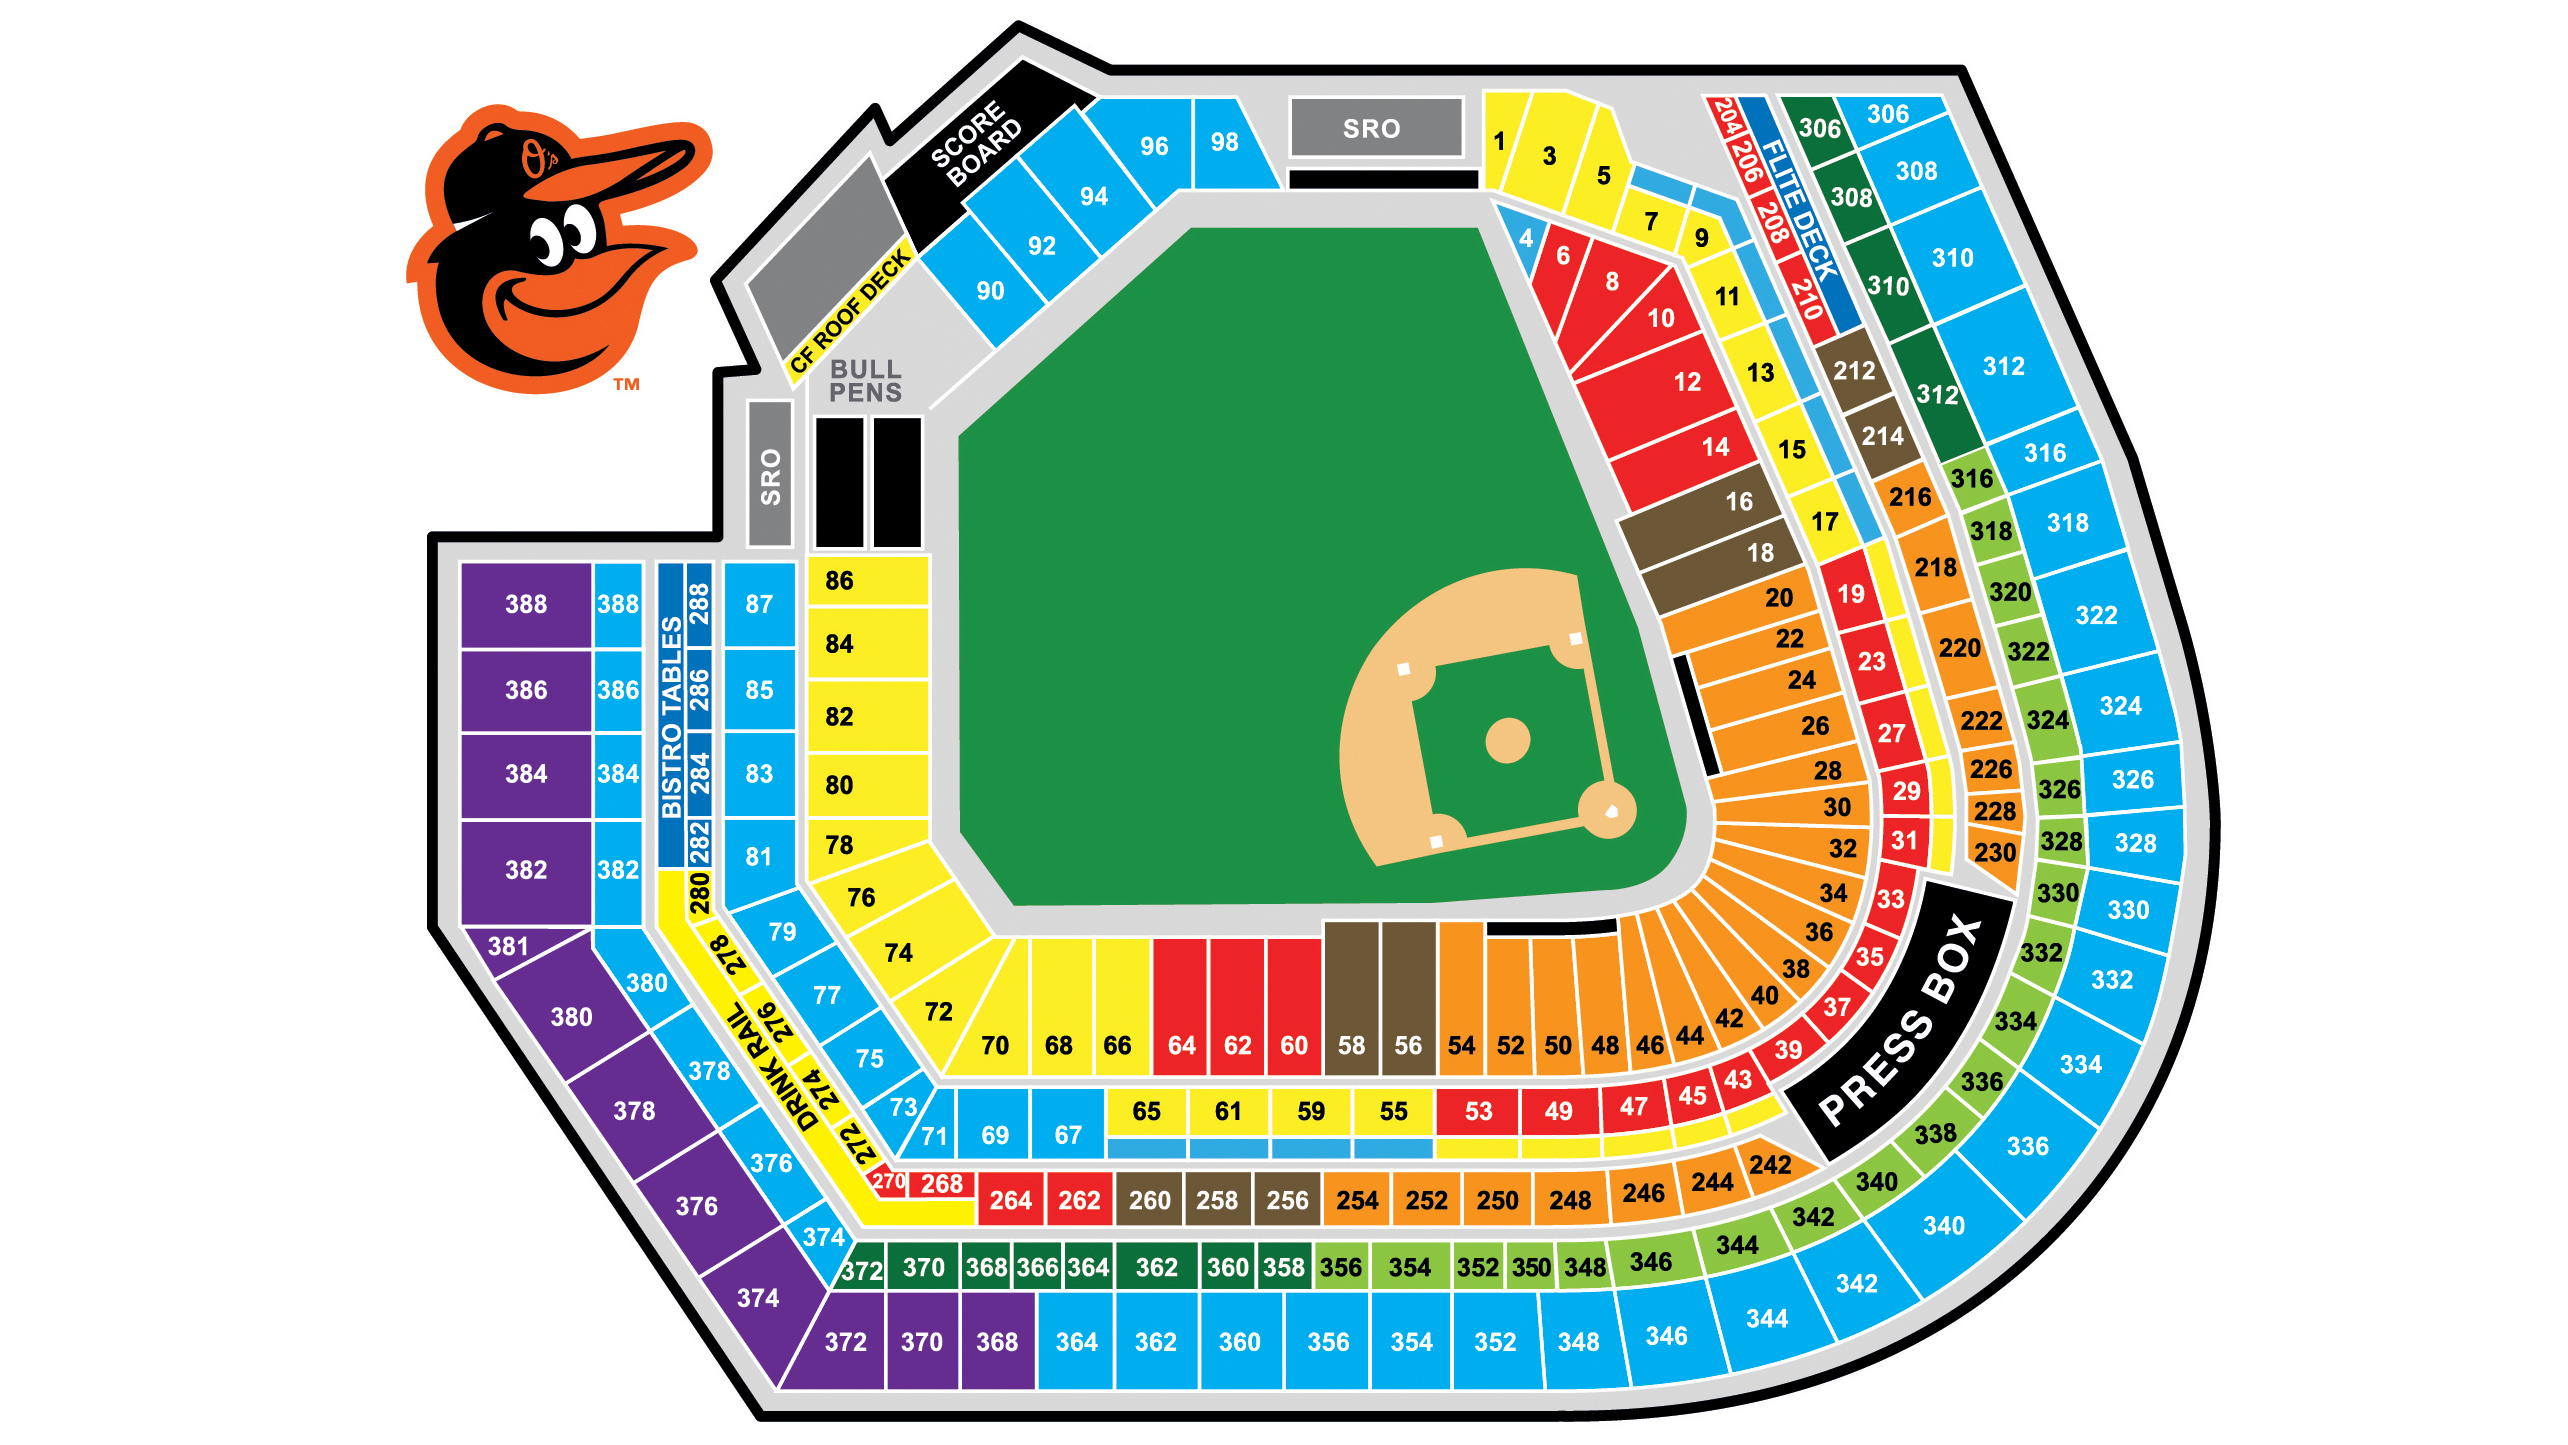 Oriole park at camden yards seating map netting baltimore orioles